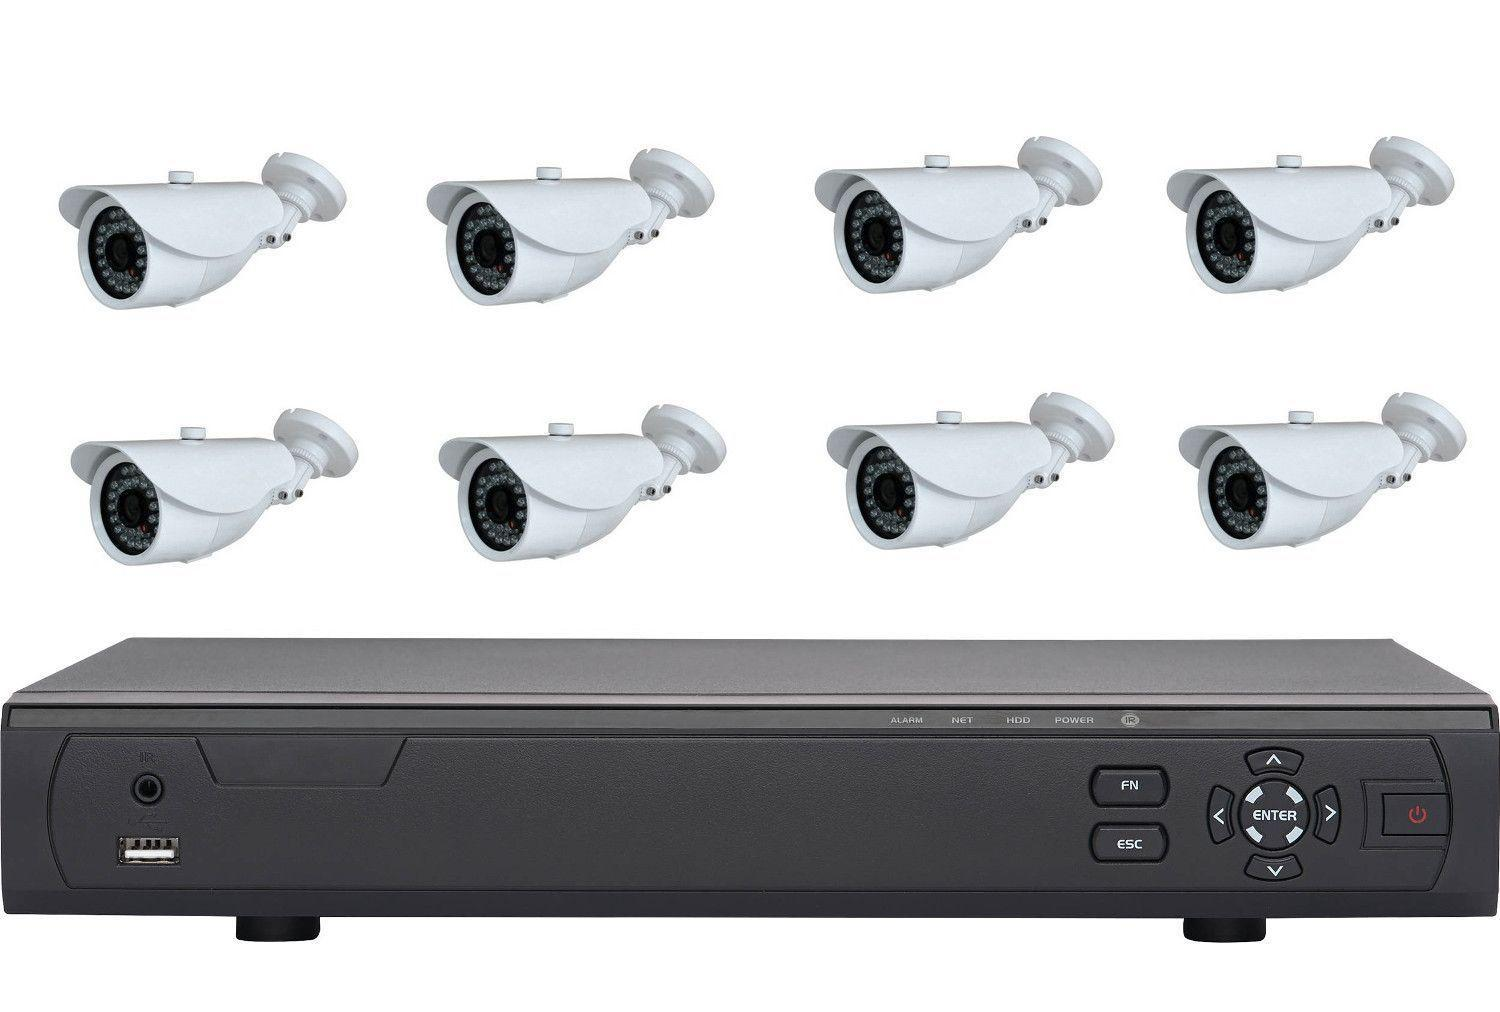 Kit vid o surveillance 8 cam ras ext rieur ahd 720p dvr for Exterieur definition